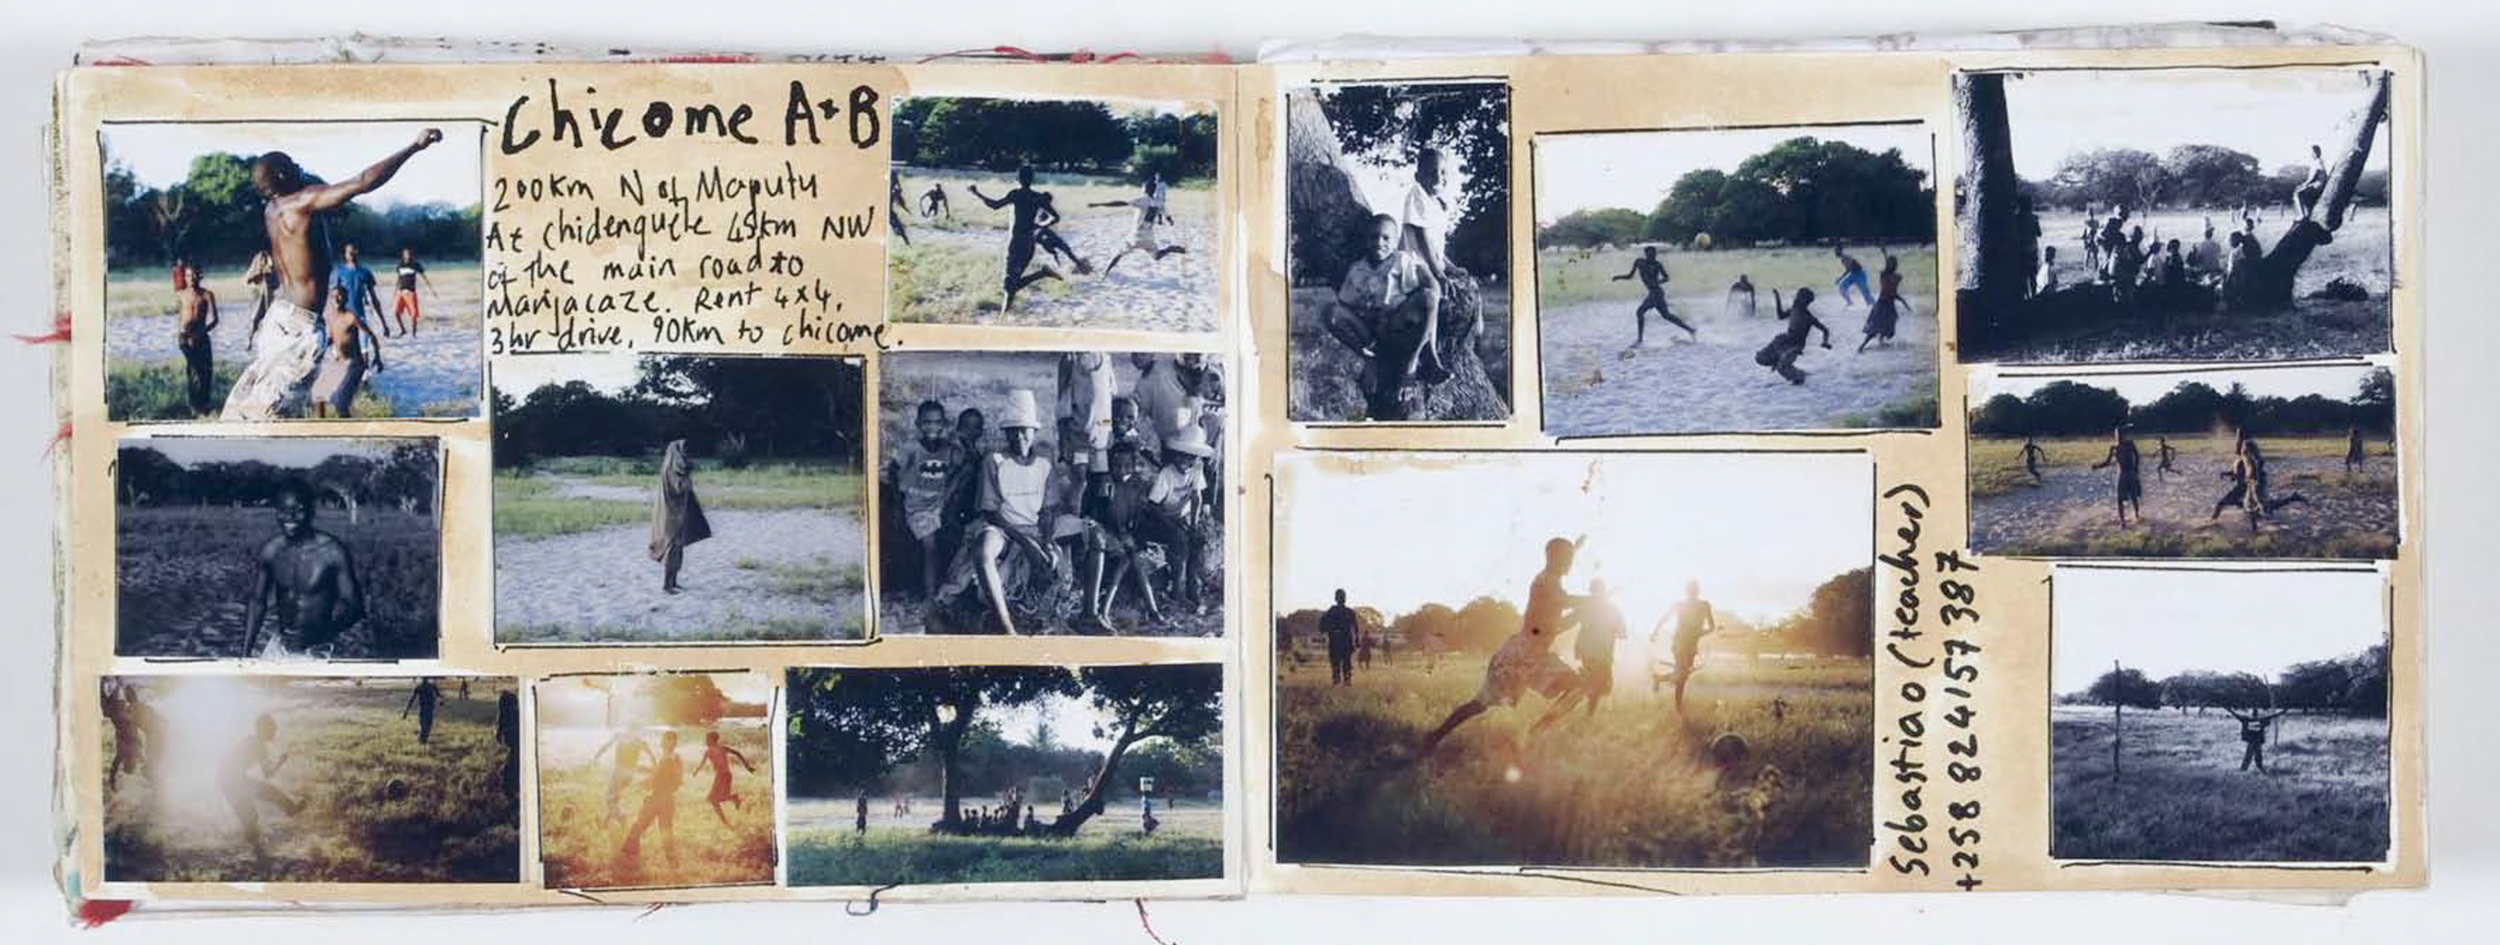 1.Log Book Mozambique Malawi_Page_06.jpg